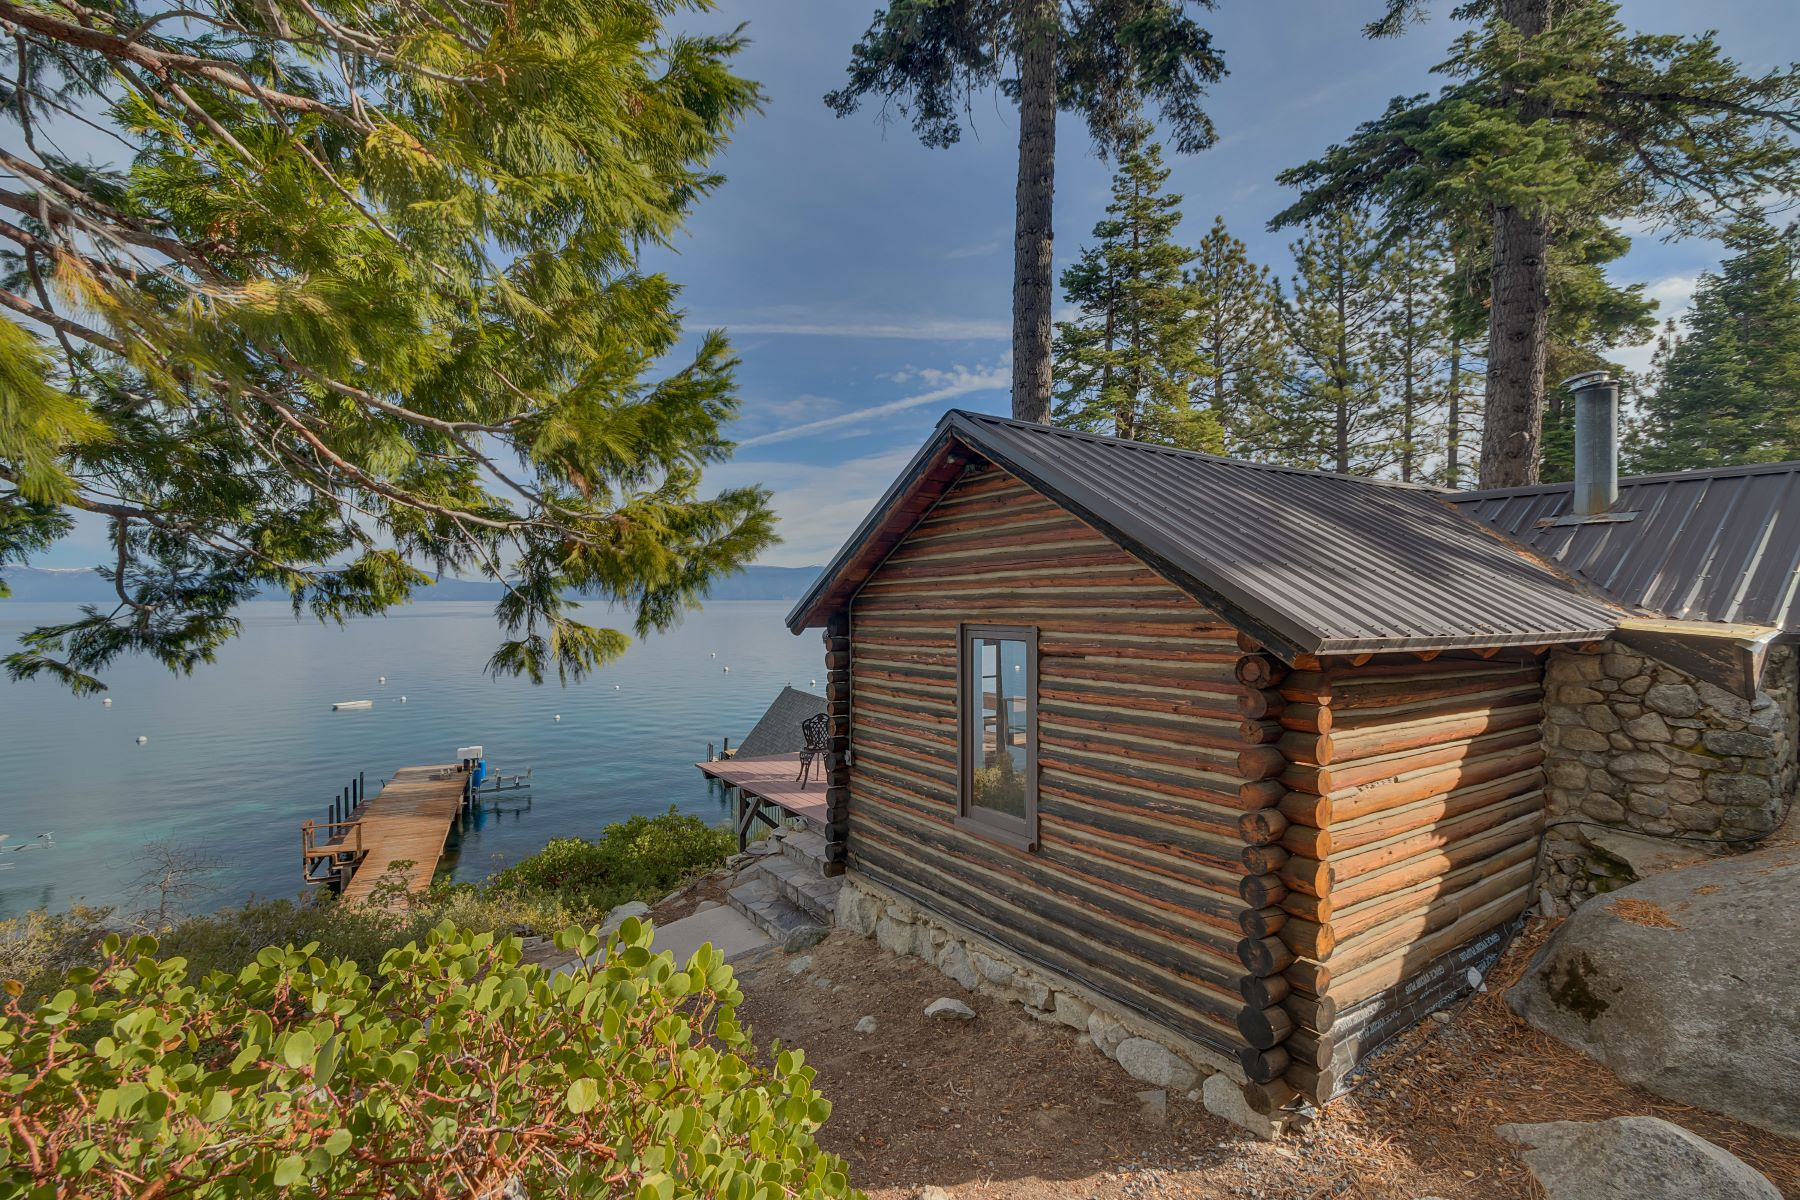 Additional photo for property listing at Storybook West Shore Family Compound 8233 Meeks Bay Ave Meeks Bay, California 96142 United States